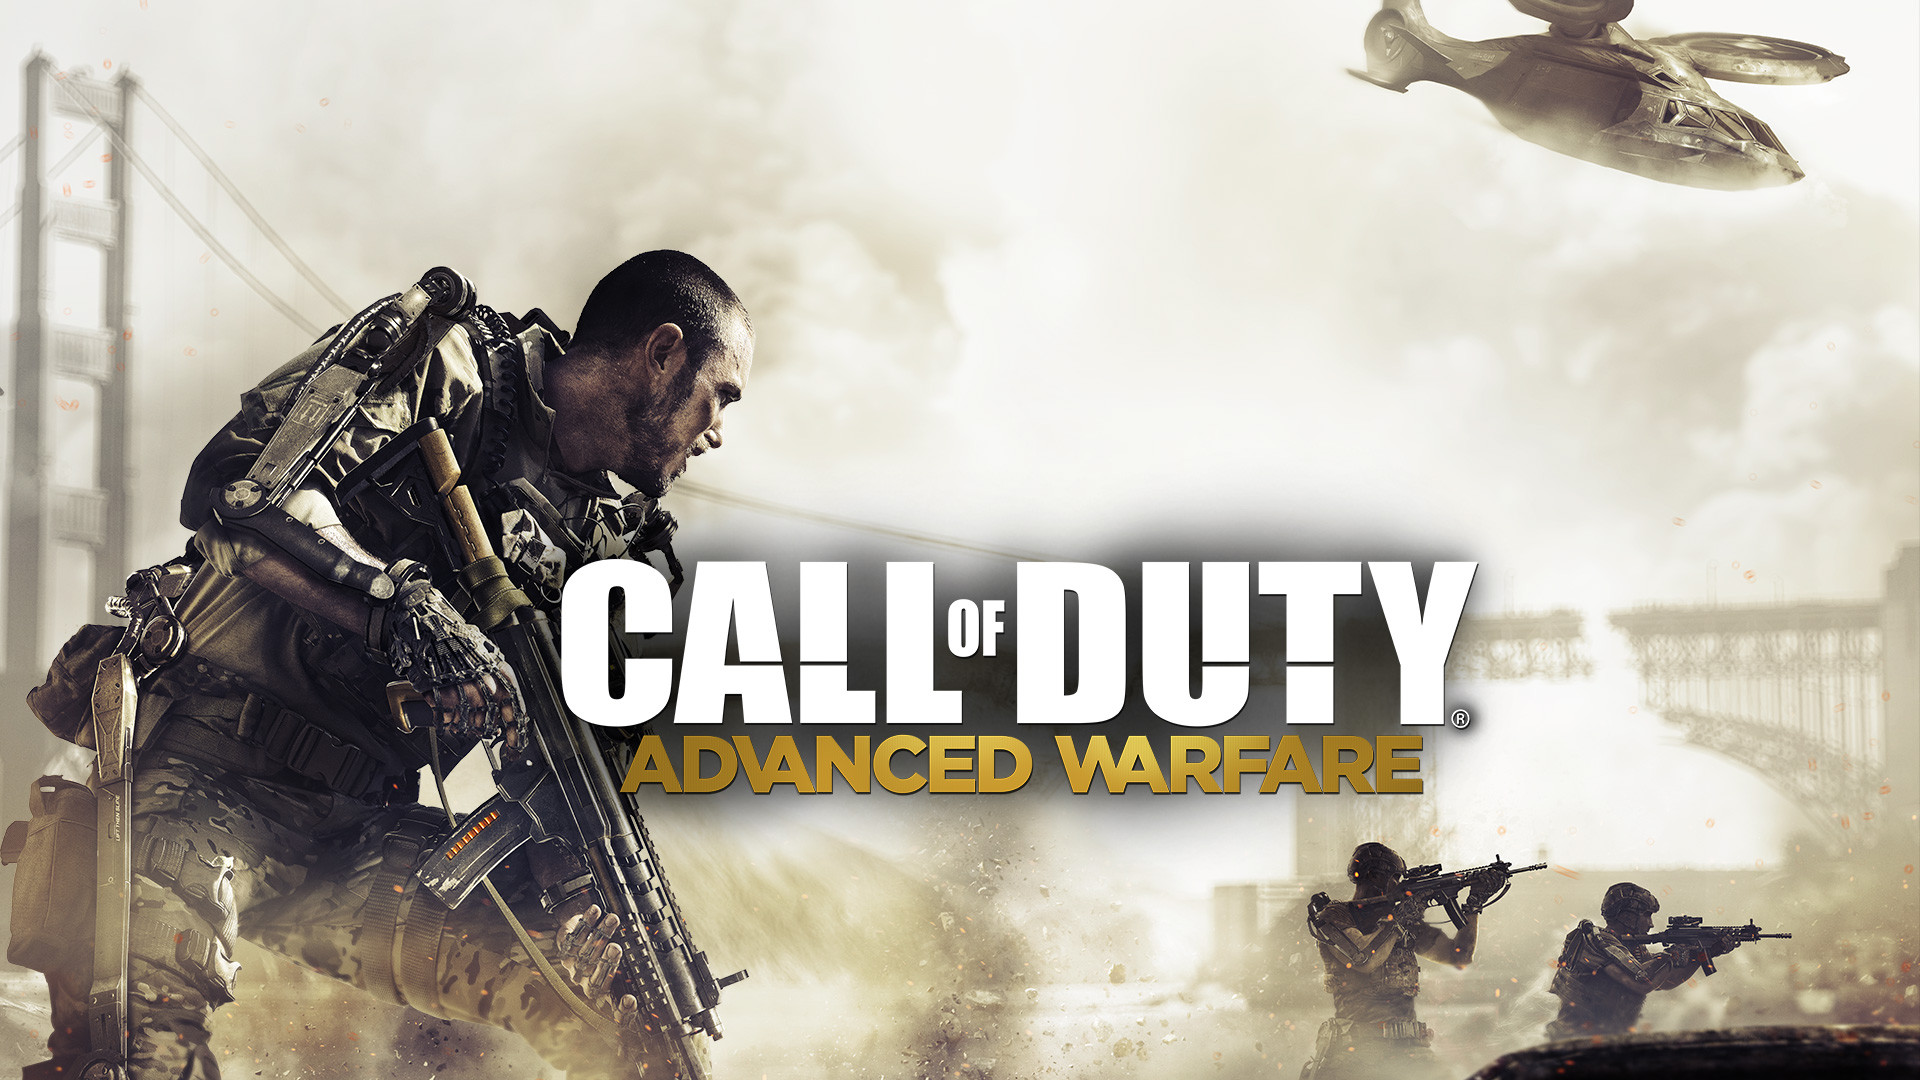 Joshua lynch 36262335 advanced warfare wallpaper